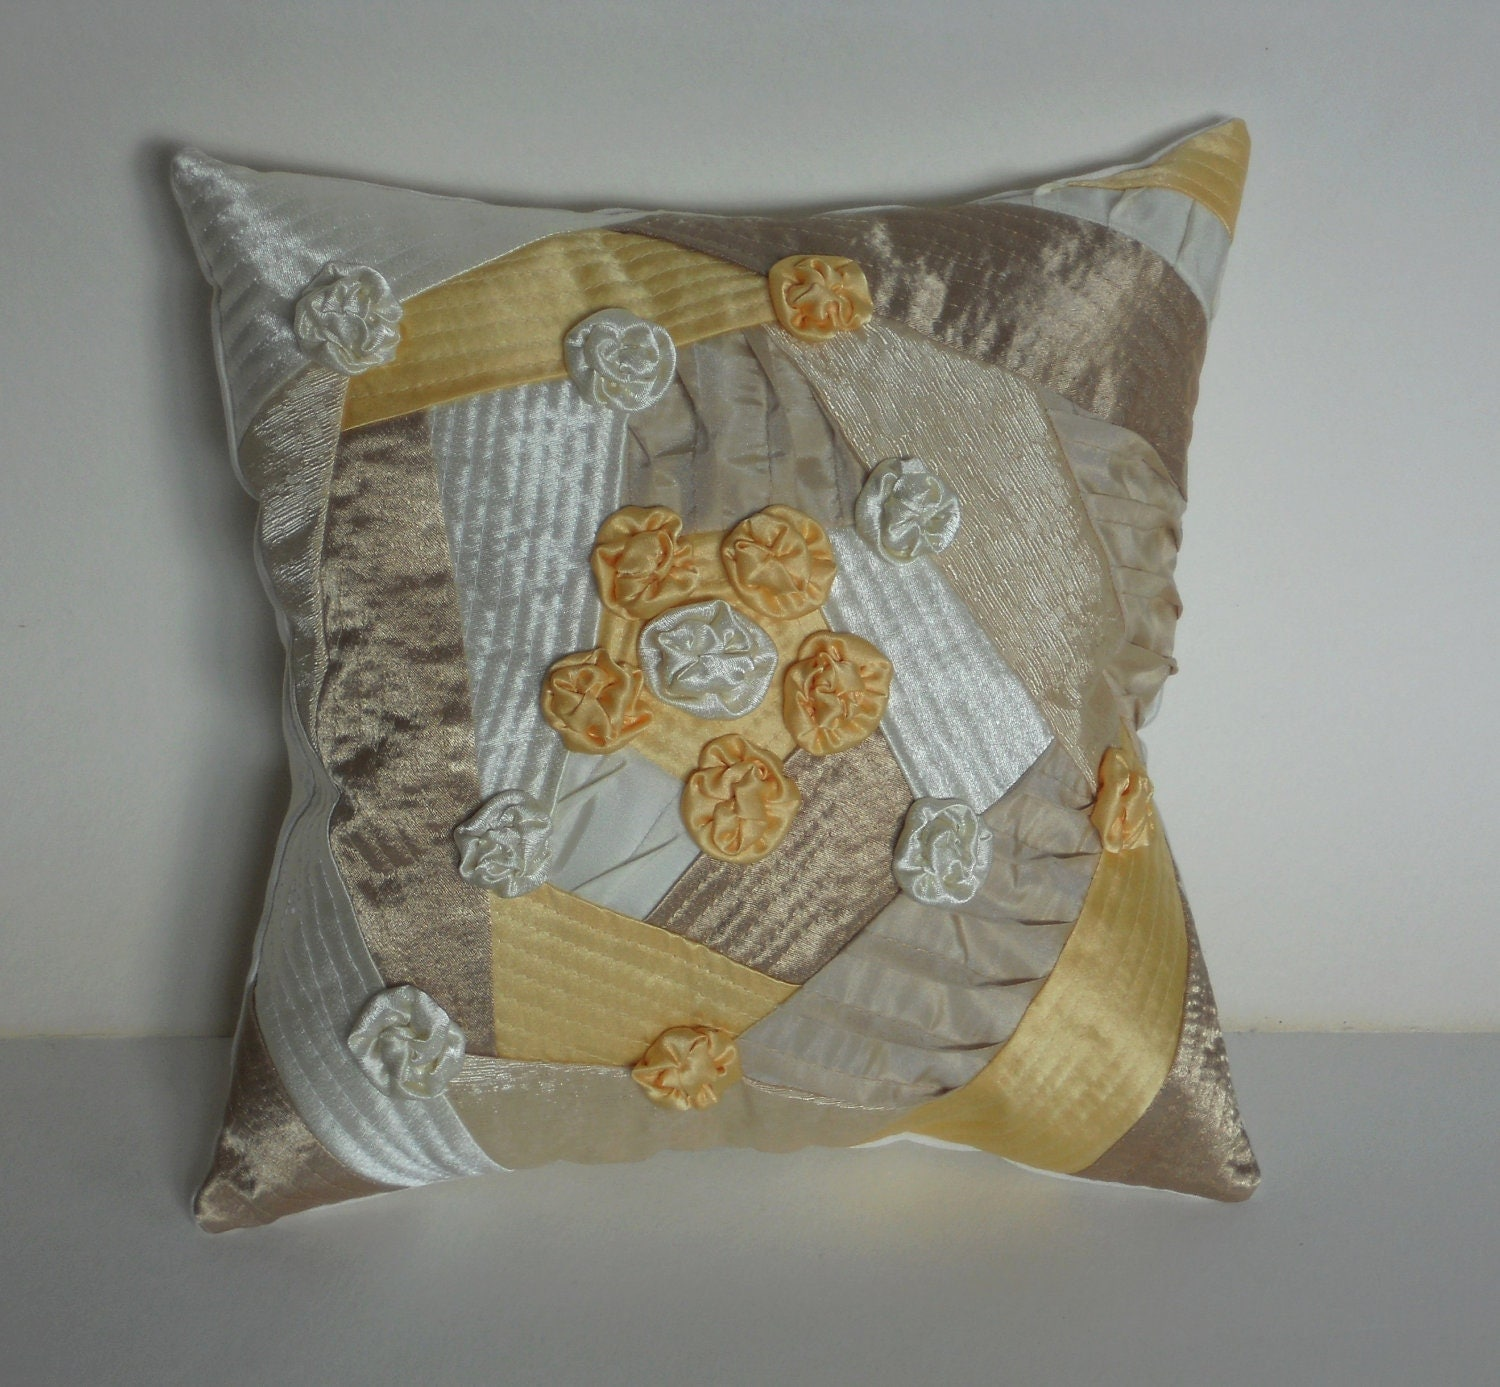 Handmade Decorative Throw Pillows : Decorative throw pillow cushion handmade roses yellow beige